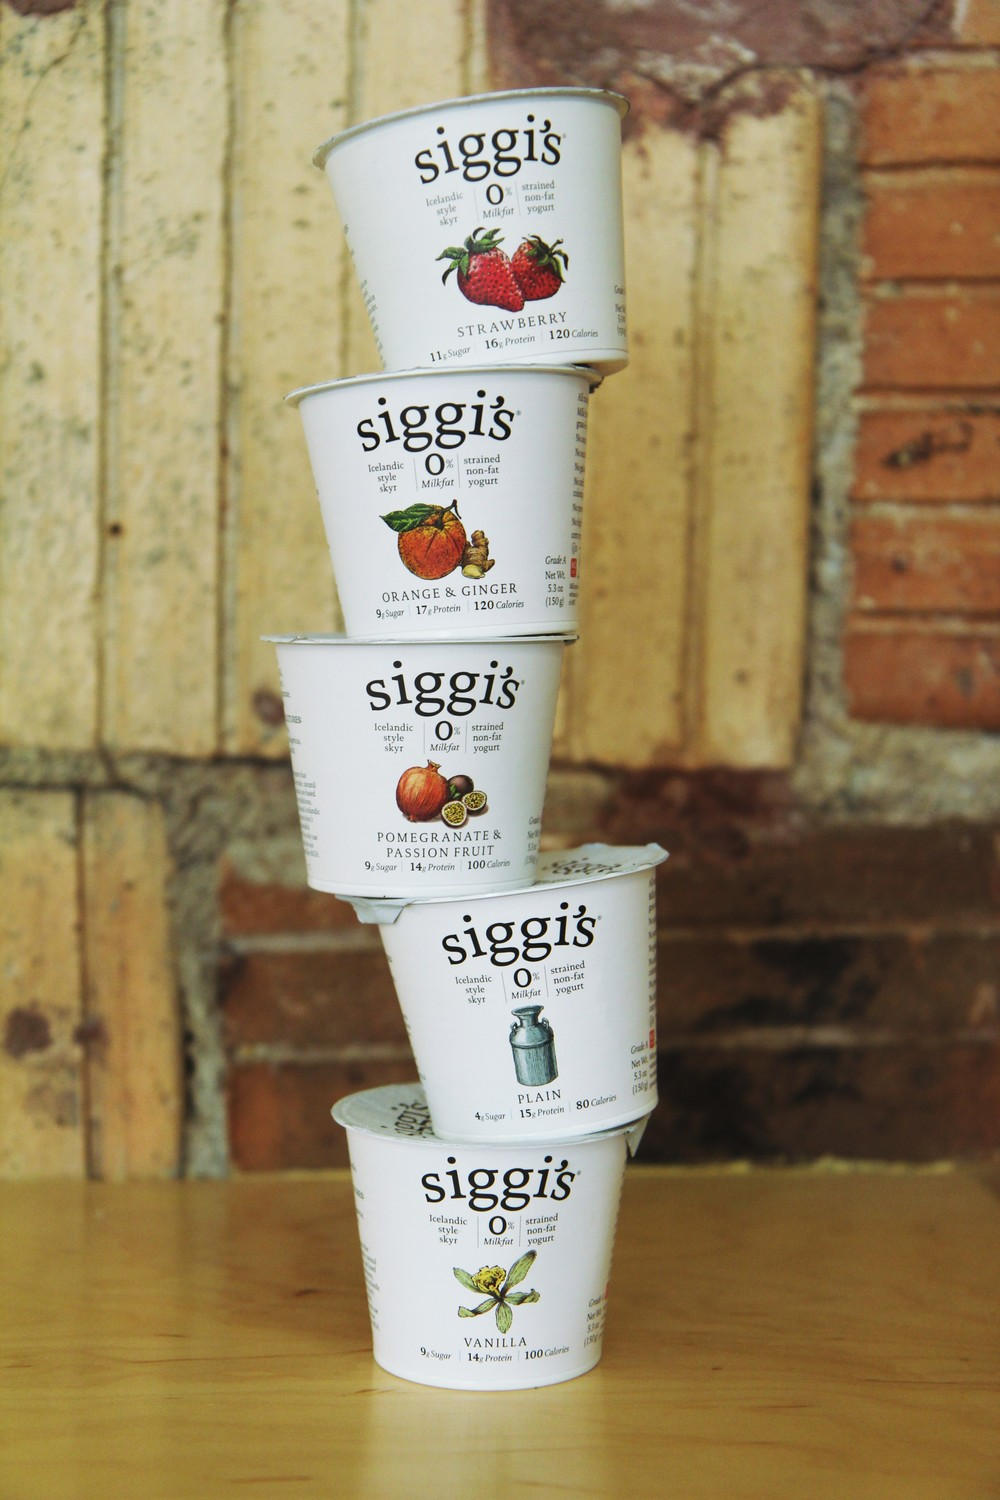 Our most recent delivery of Siggi's products. We can't decide if there is a best flavor.